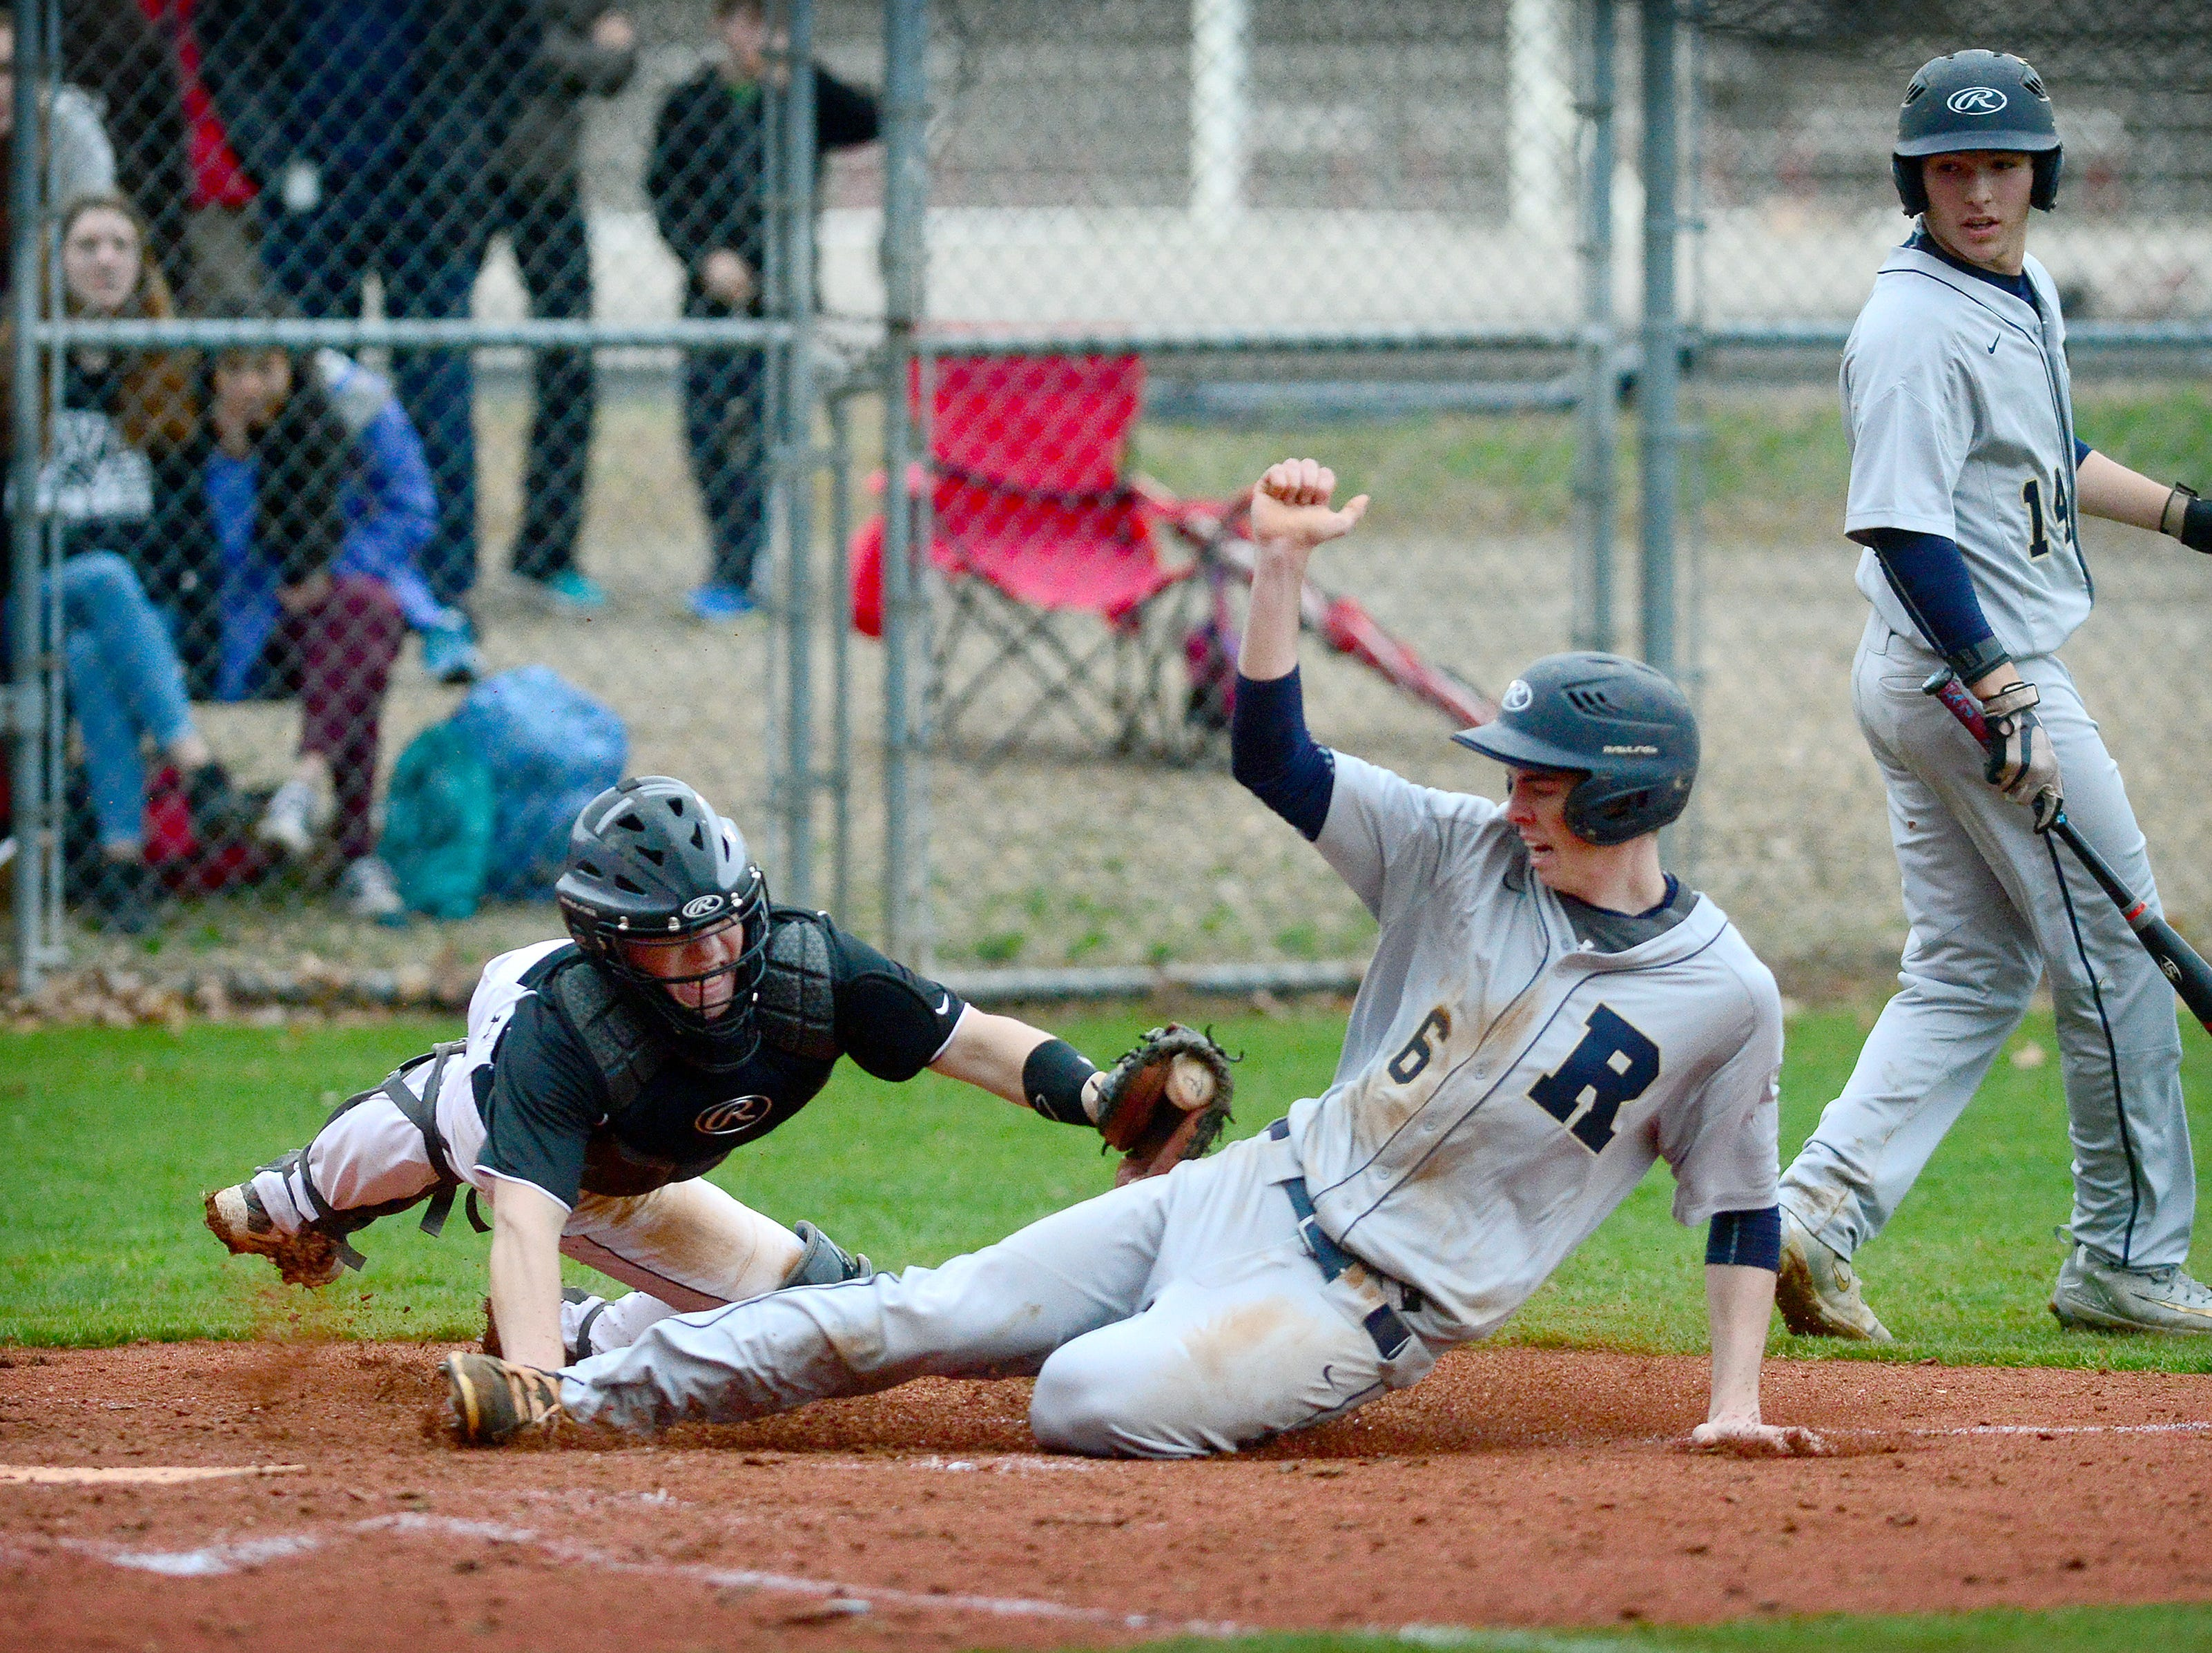 Roberson's Ethan Miller narrowly misses the tag from Asheville catcher Three Hillier as he slides safely into home plate to score a run during their game at Asheville High School on Wednesday, Feb. 28, 2018. The Cougars went on to defeat the Rams 6-5 in five innings. The game was called due to darkness.